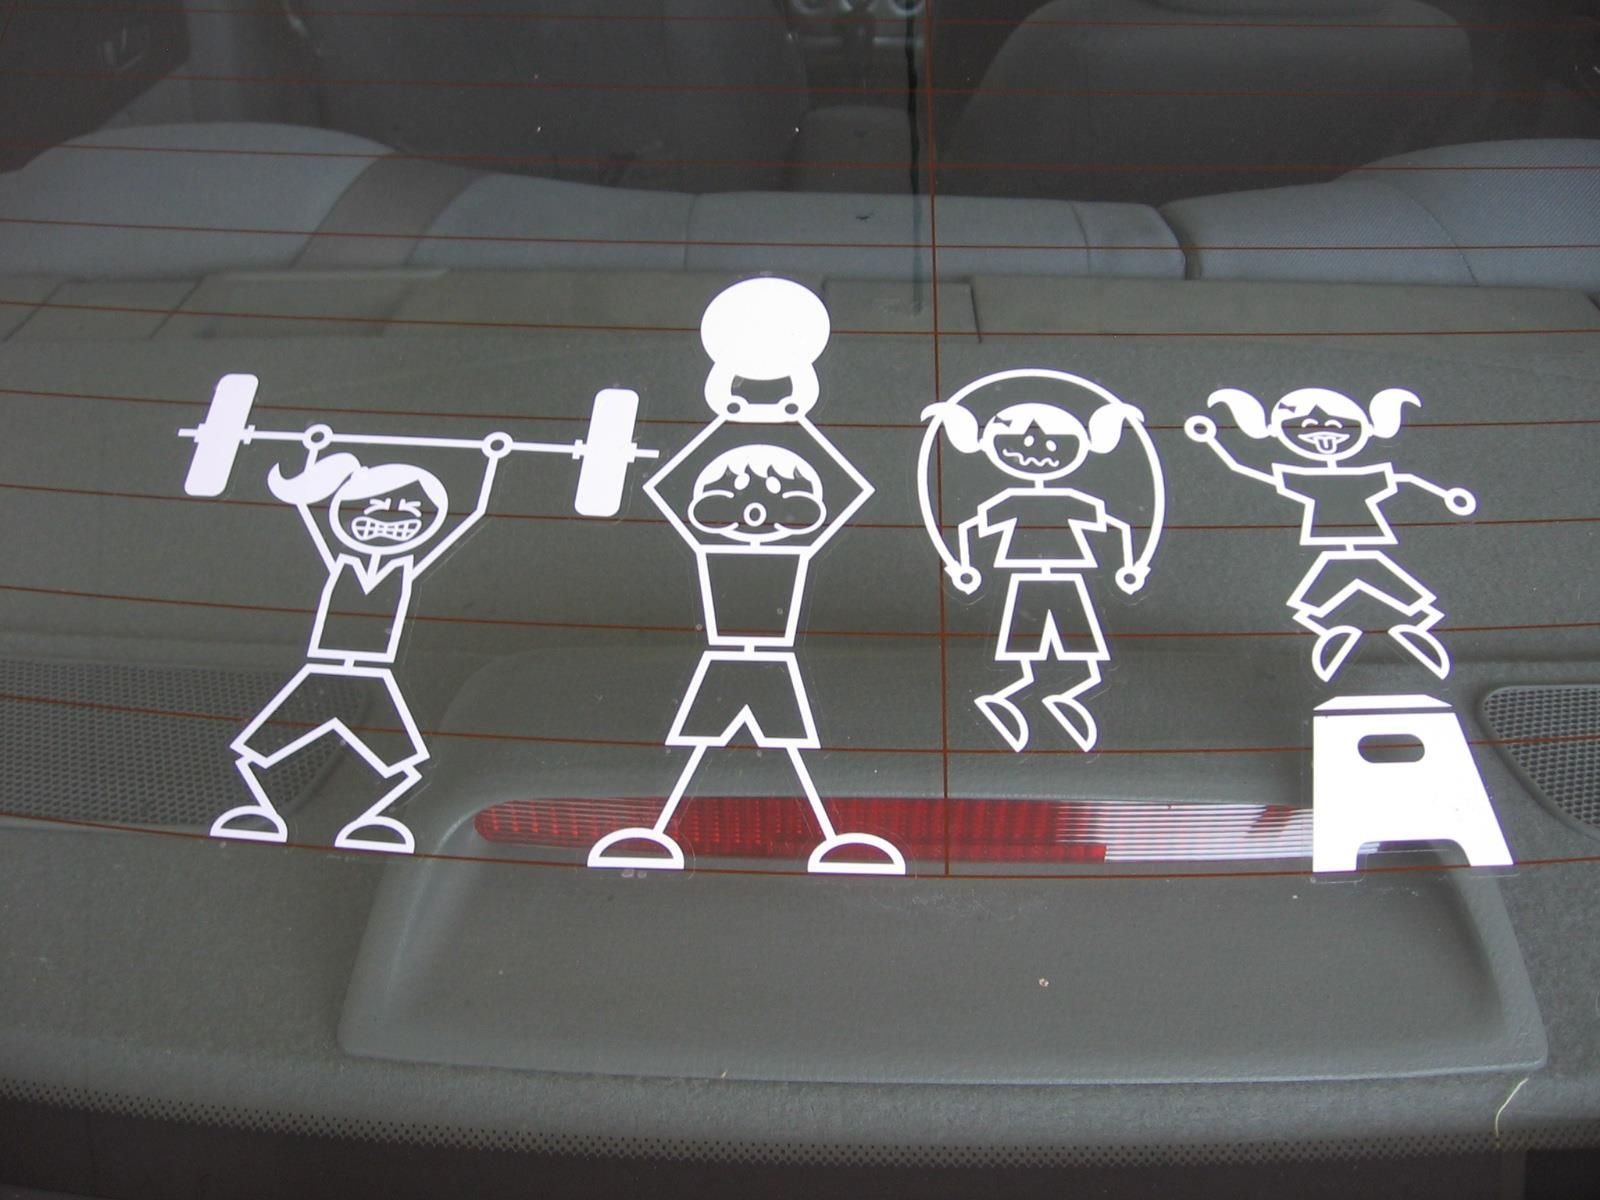 Super Cute Crossfit Inspired Family Decals For Your Auto At Www Stickitstrong Crossfit Kids Crossfit Inspiration Crossfit Humor [ 1200 x 1600 Pixel ]